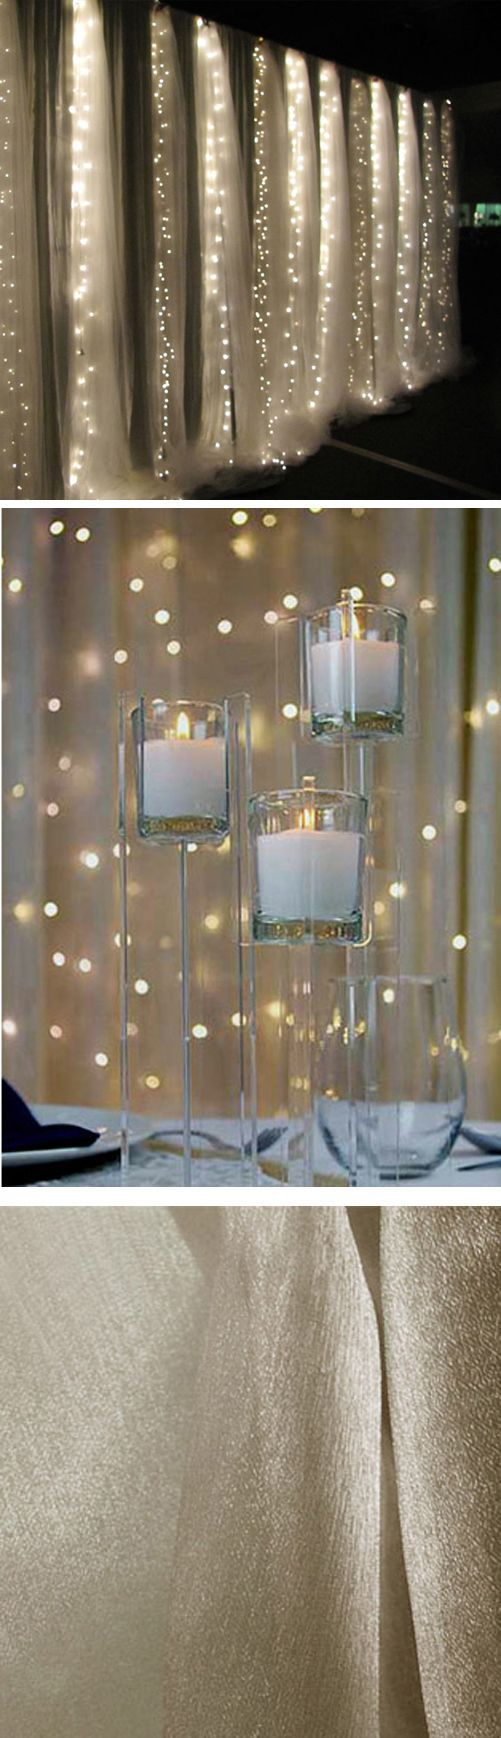 100 White LED Polka Dot Pattern Changing String Lights Expandable Clear Cord On Sale Now Plug In Cheap At Bulk Wholesale Best